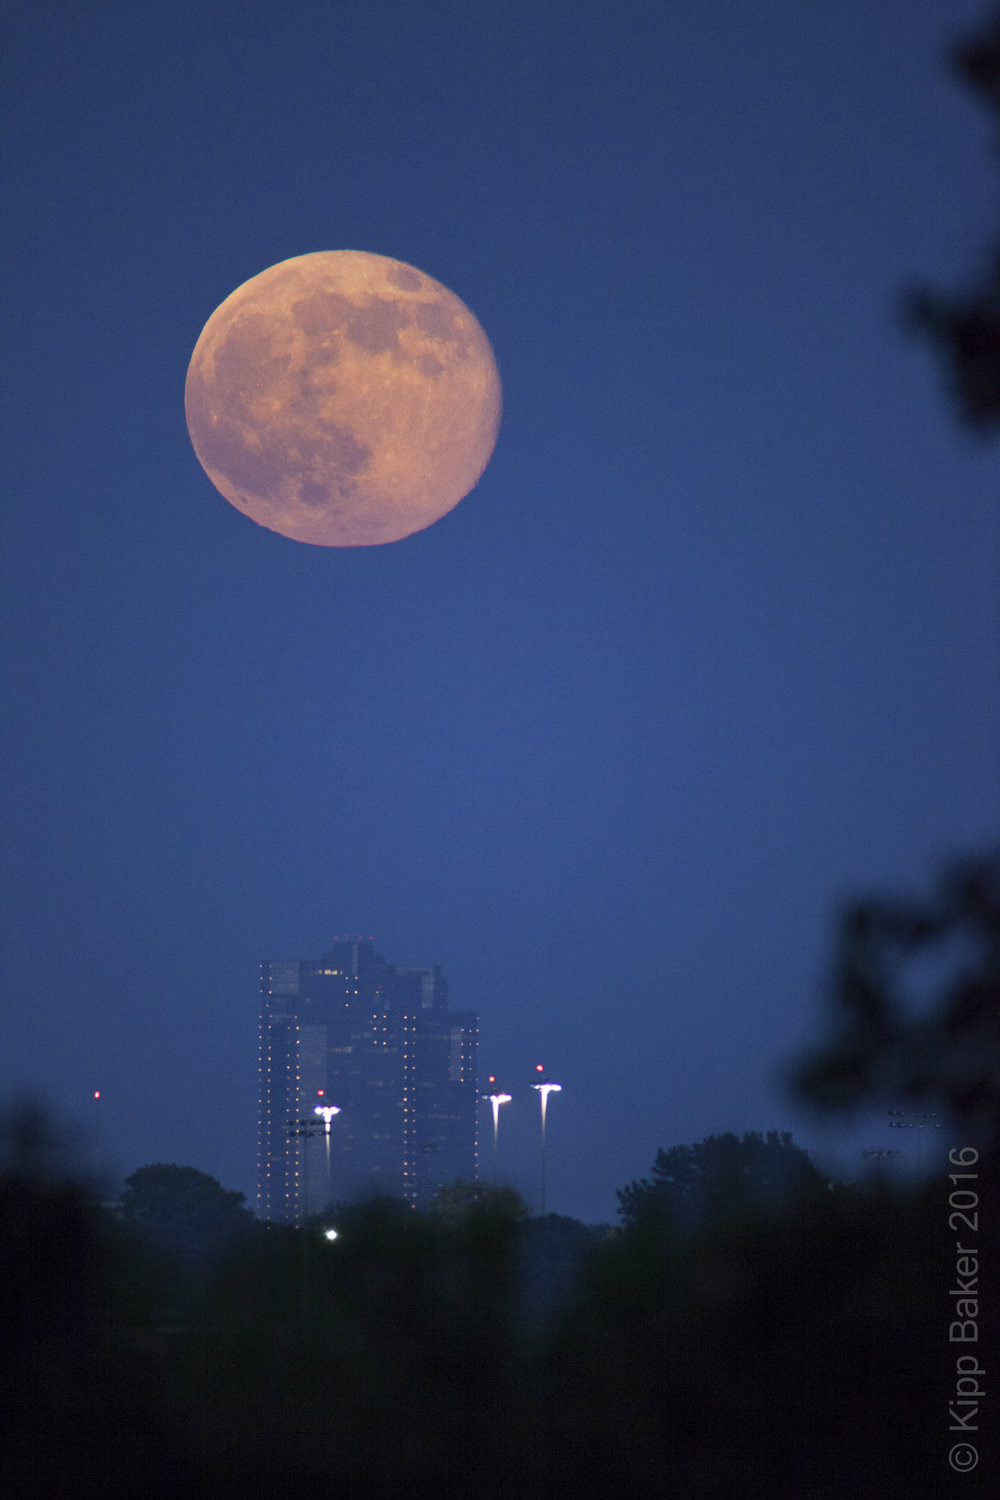 Supermoon over Fort Worth, Texas Copyright © Kipp Baker, All rights reserved.